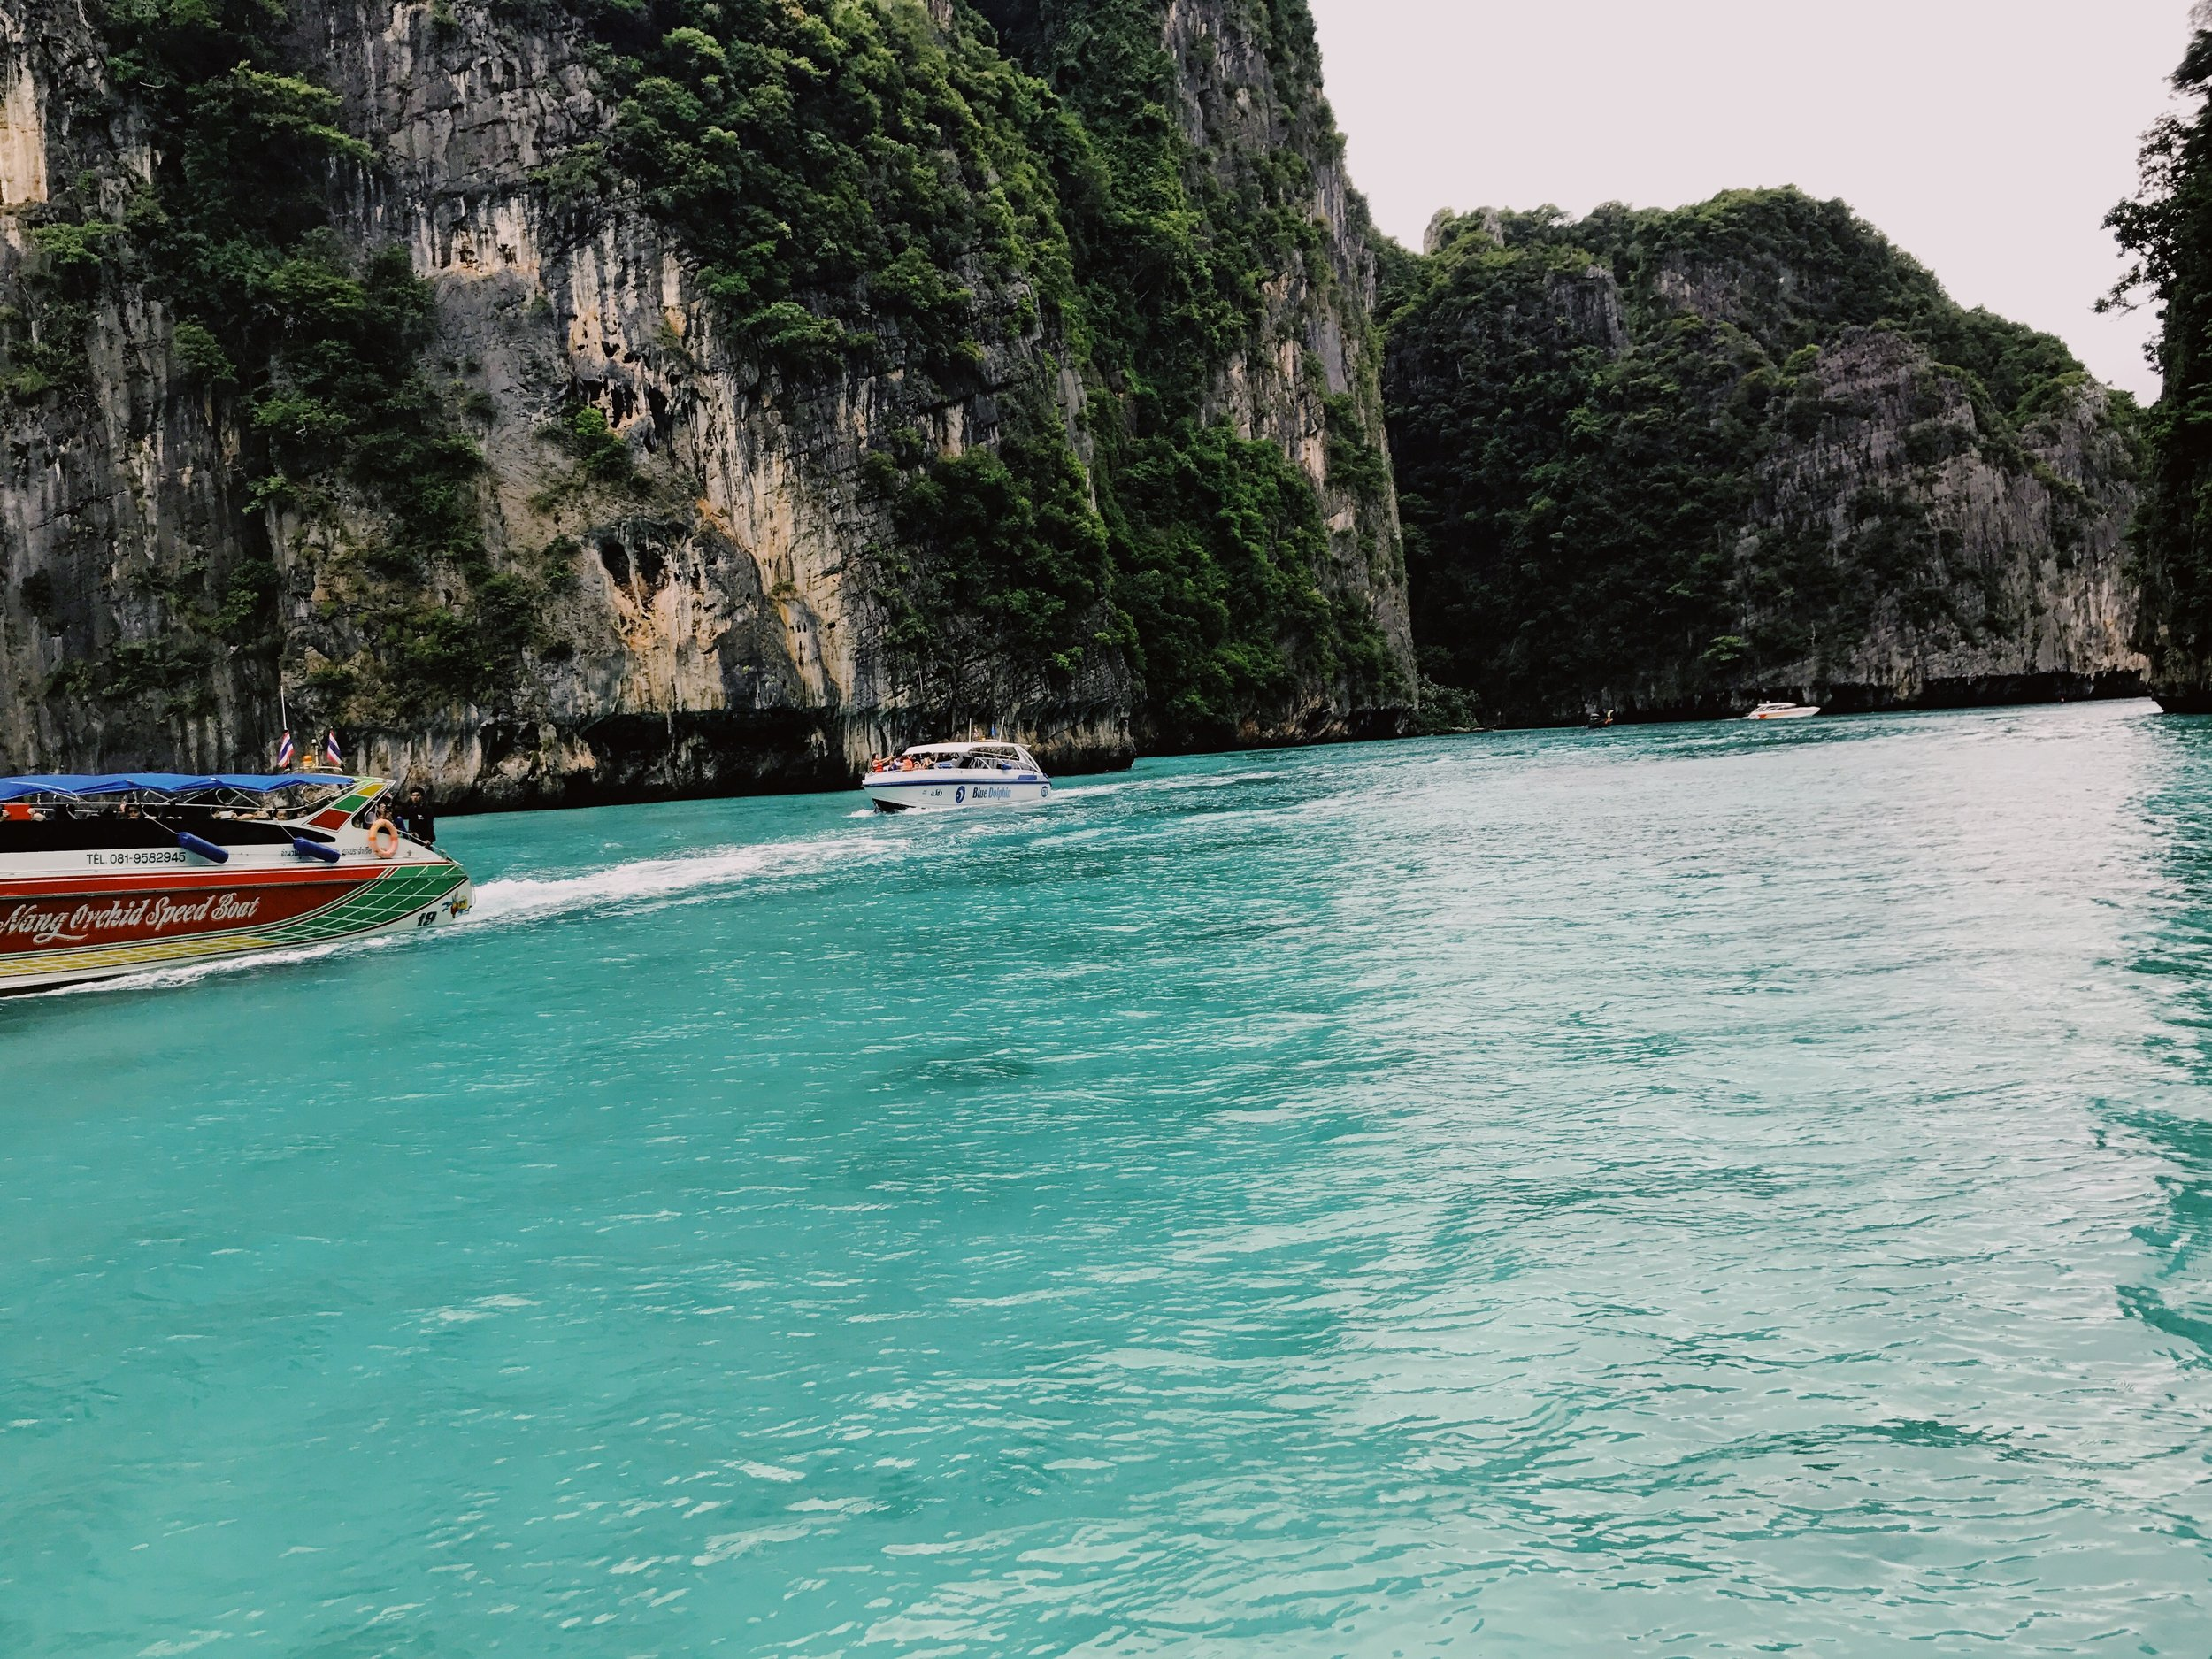 There are six islands in the group known as Phi Phi... - Ko Phi Phi Don and Koh Phi Phi Lee are the largest islands...